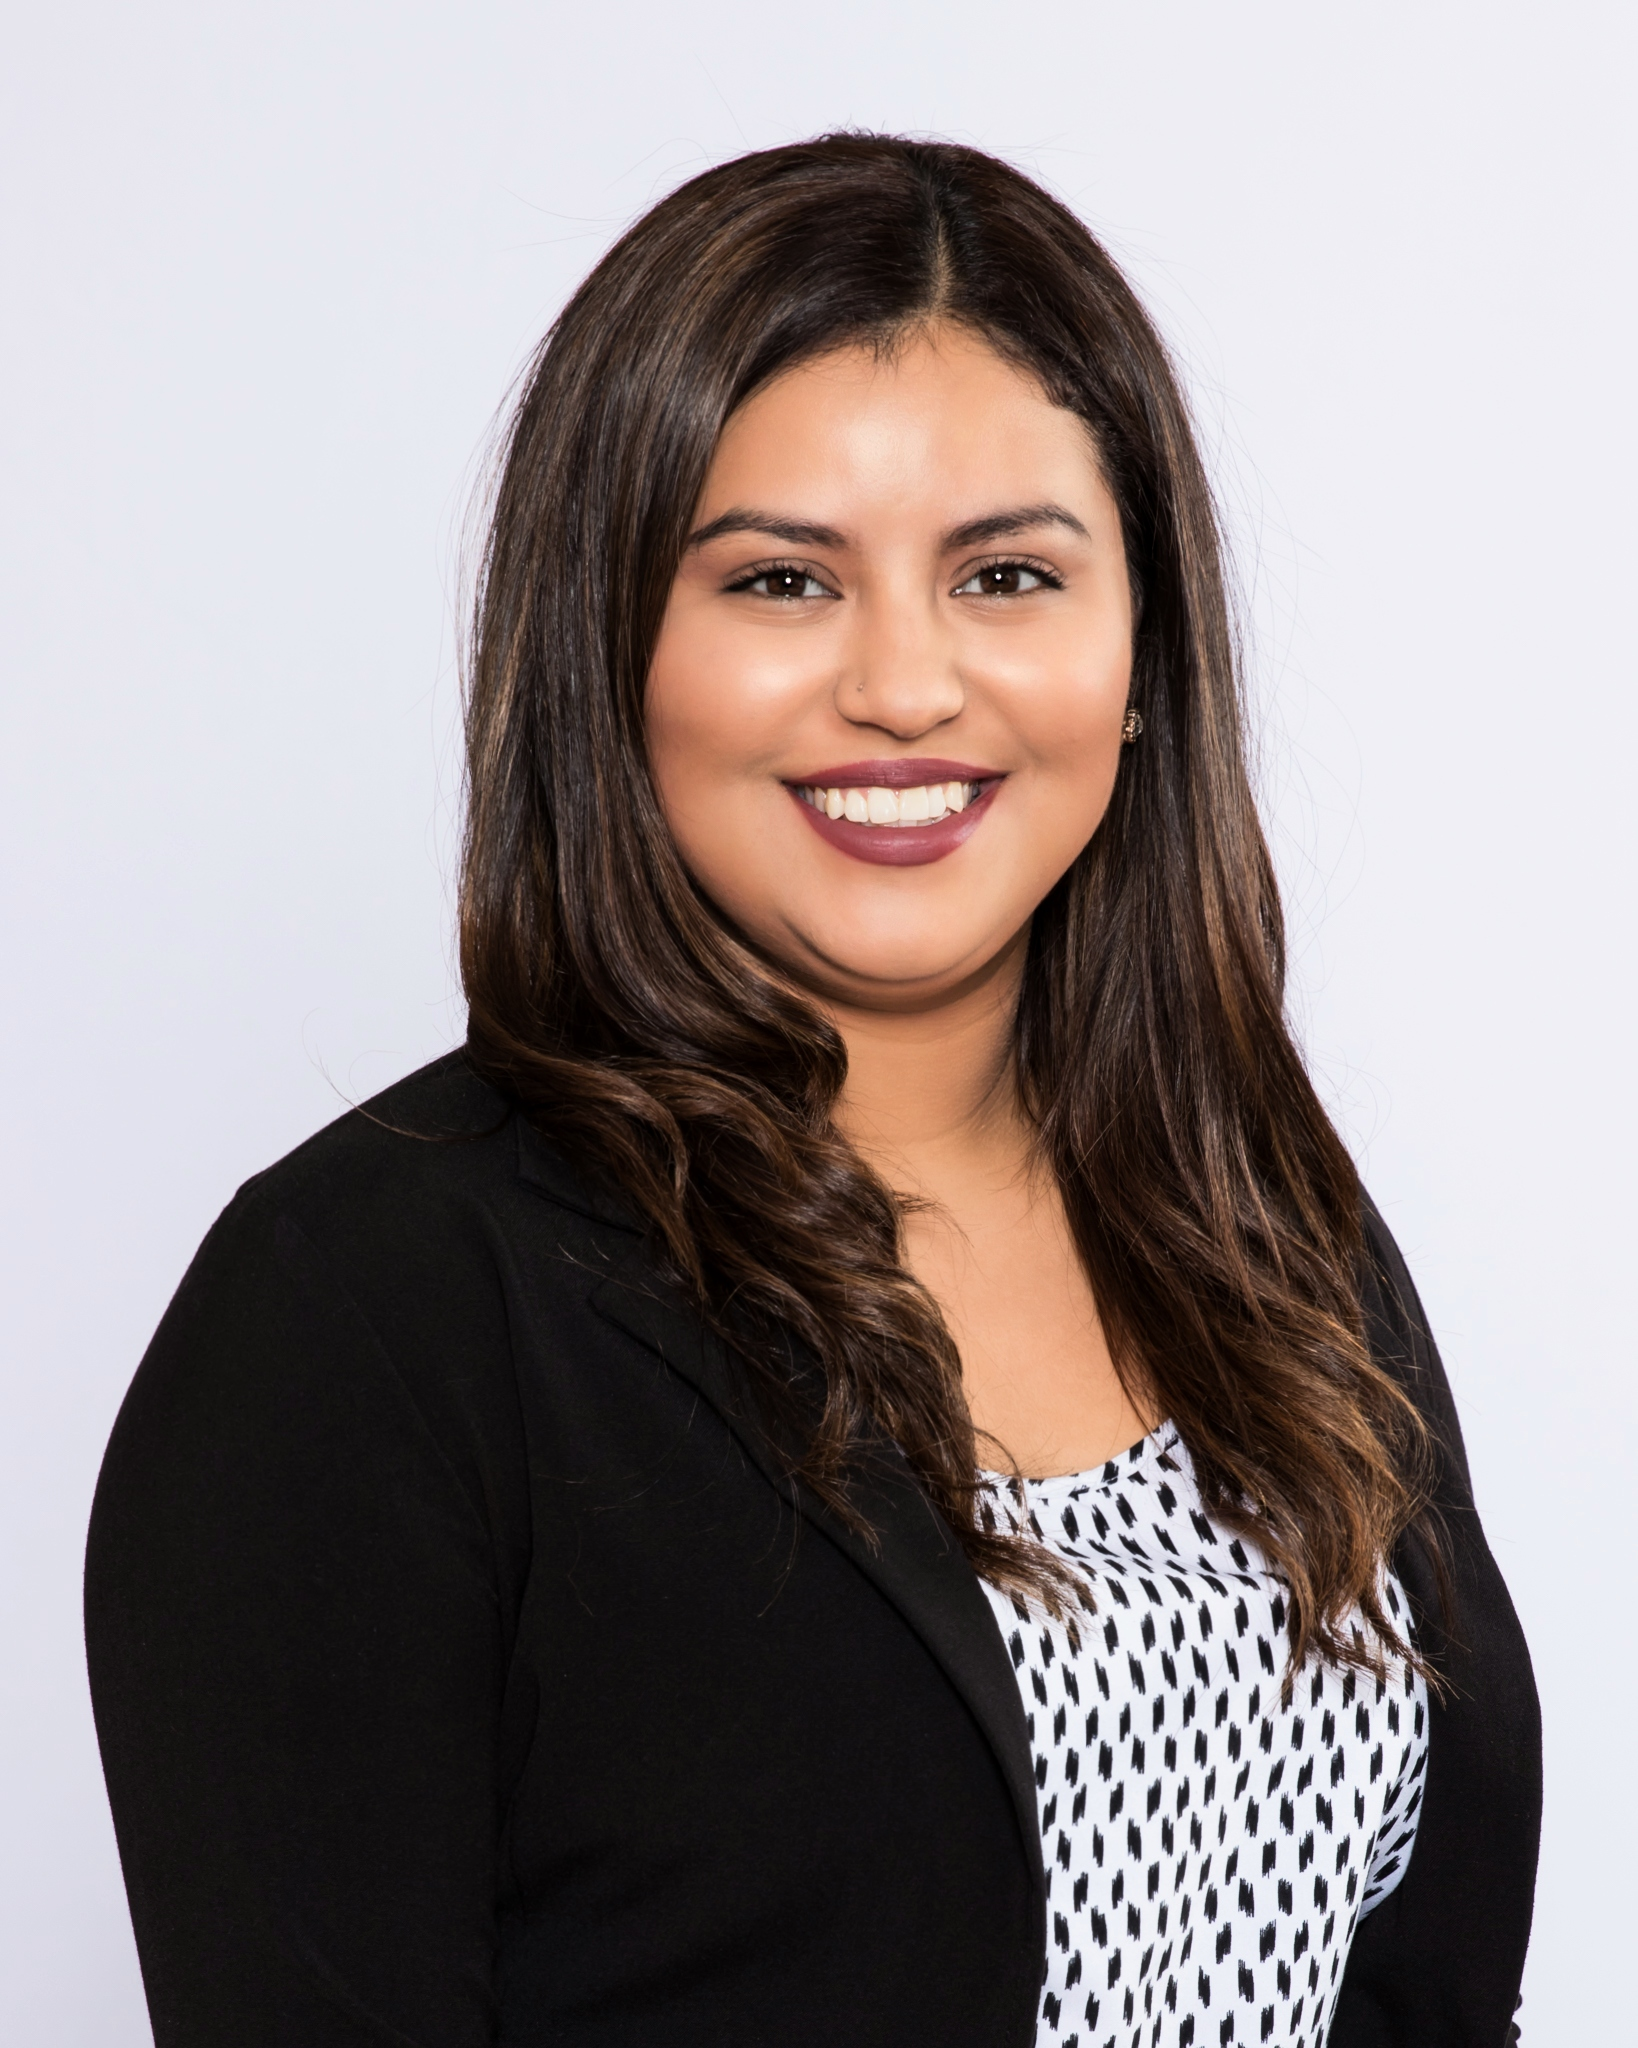 3rd Grade Dual Language Teacher - Asucena Lopez born and raised in Chicago. She graduated with her Bachelors from DePauw University and subsequently taught for two years in Indiana. Asucena has recently obtained her Masters of Arts in Teaching and is passionate about working with English Language Learners, while maintaining their native language.